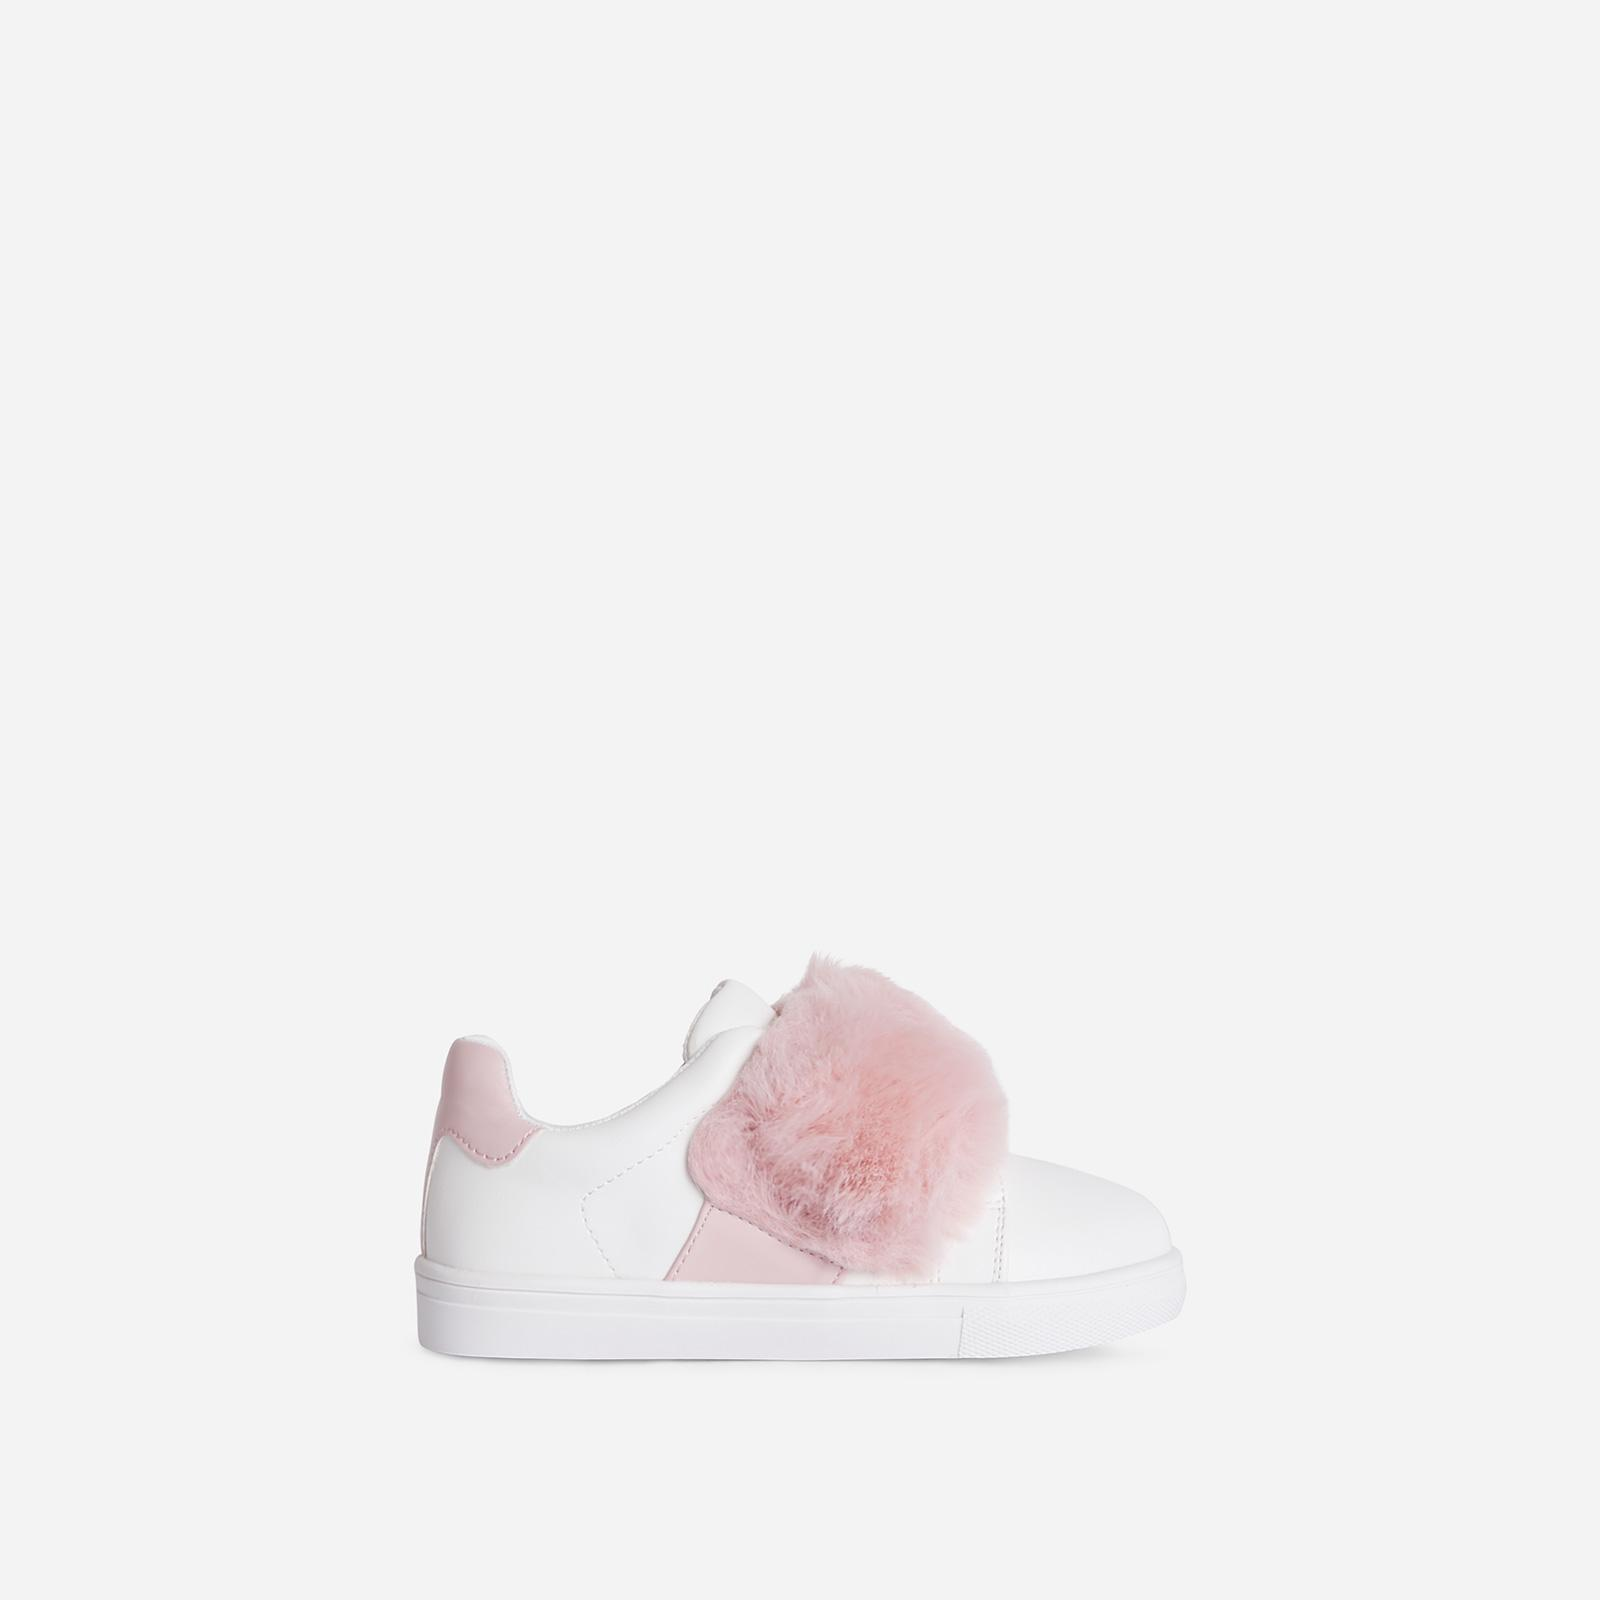 Plush-Baby Kid's Pink Fluffy Stripe Trainer In White Faux Leather Kid's, White